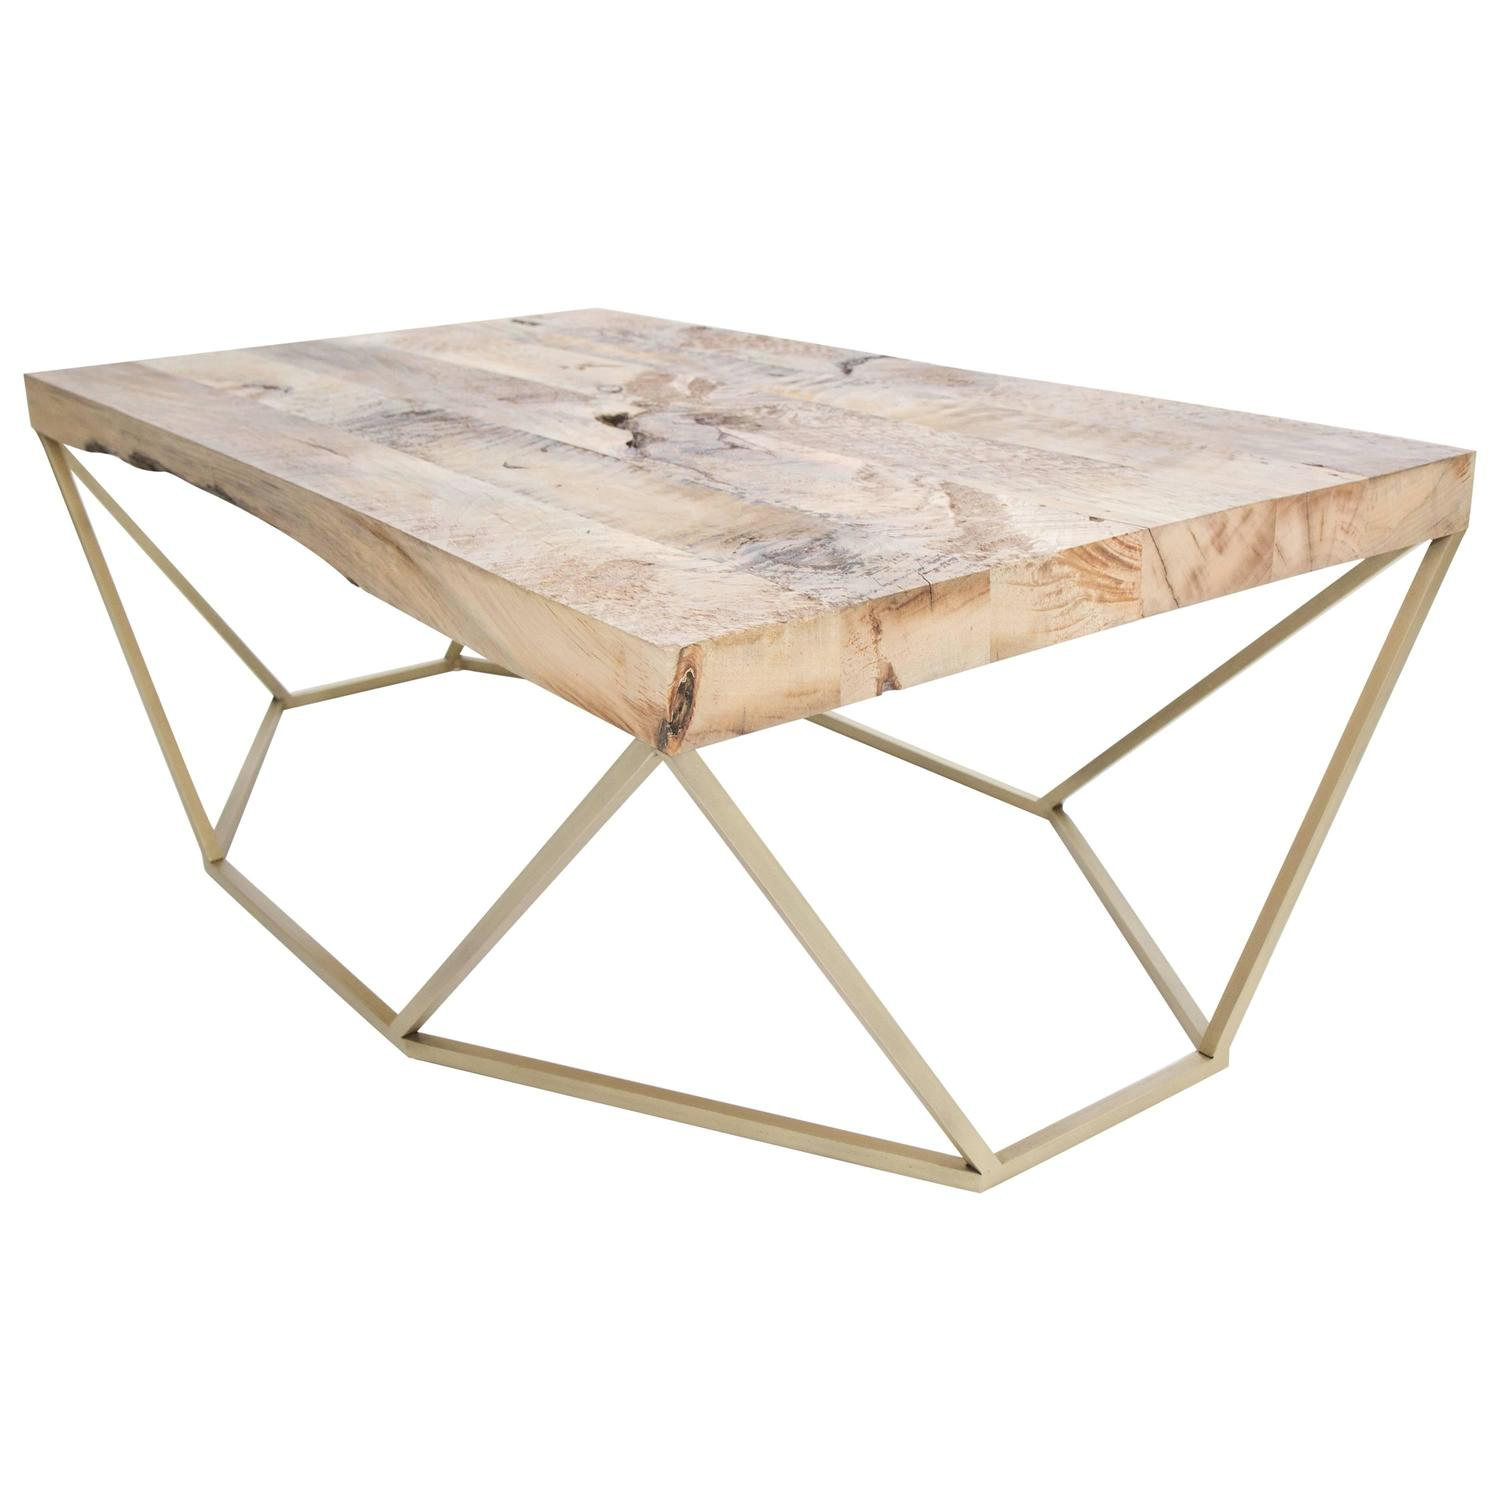 Salvaged solid peroba wood block coffee table at 1stdibs dusk coffee table small in salvaged wood and brushed brass geotapseo Image collections